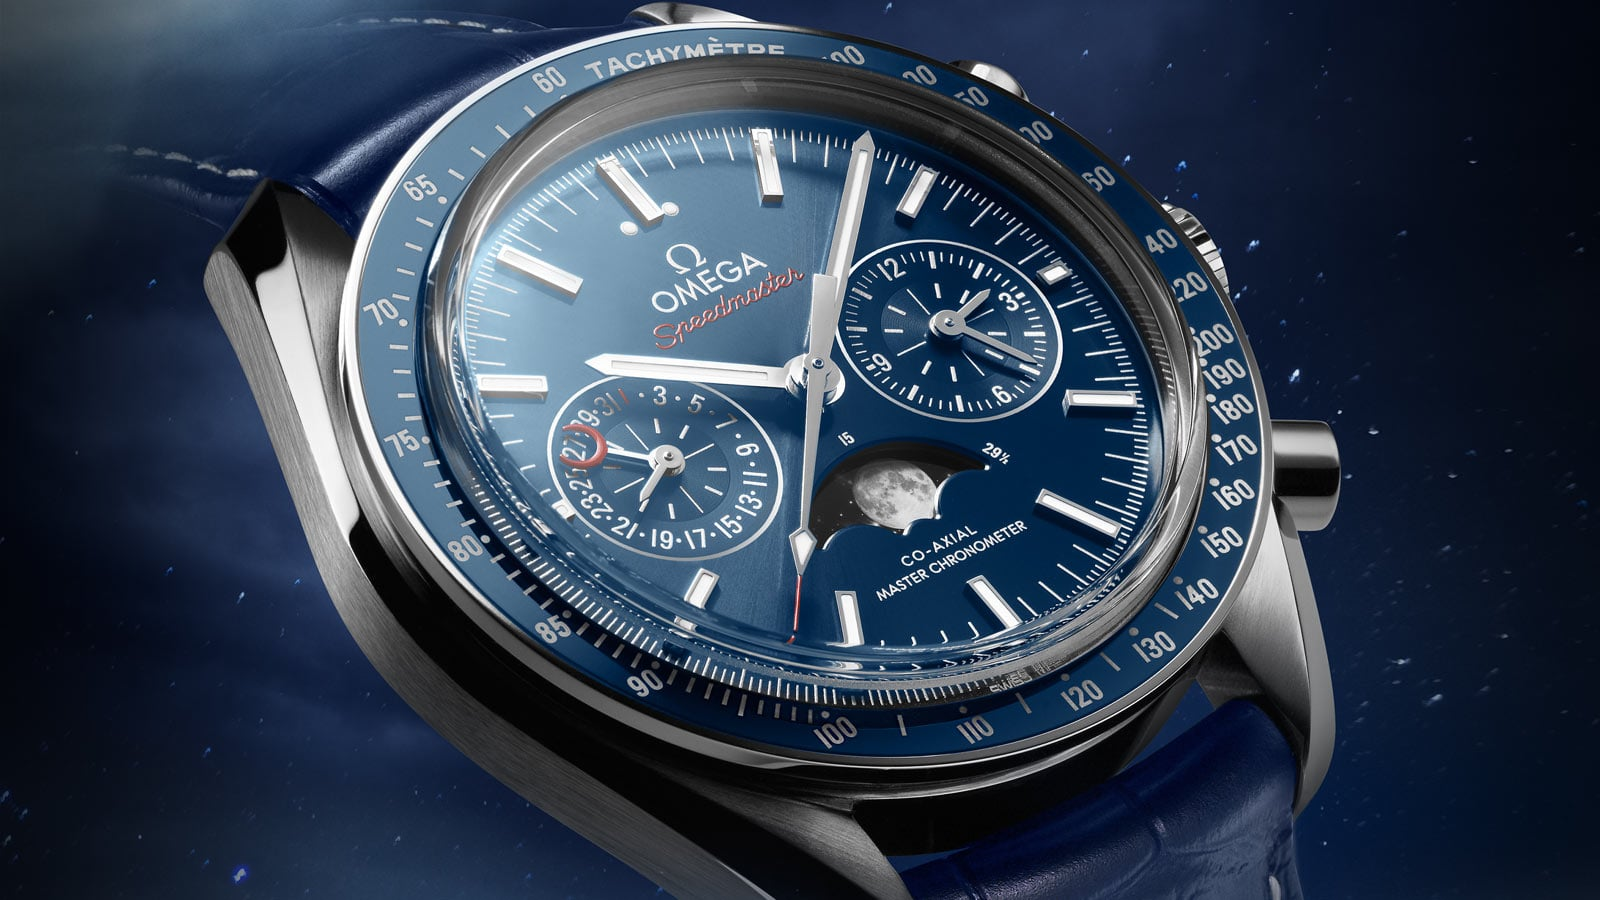 Close-up view of the Omega MOONWATCH MOONPHASE steel case on blue bracelet